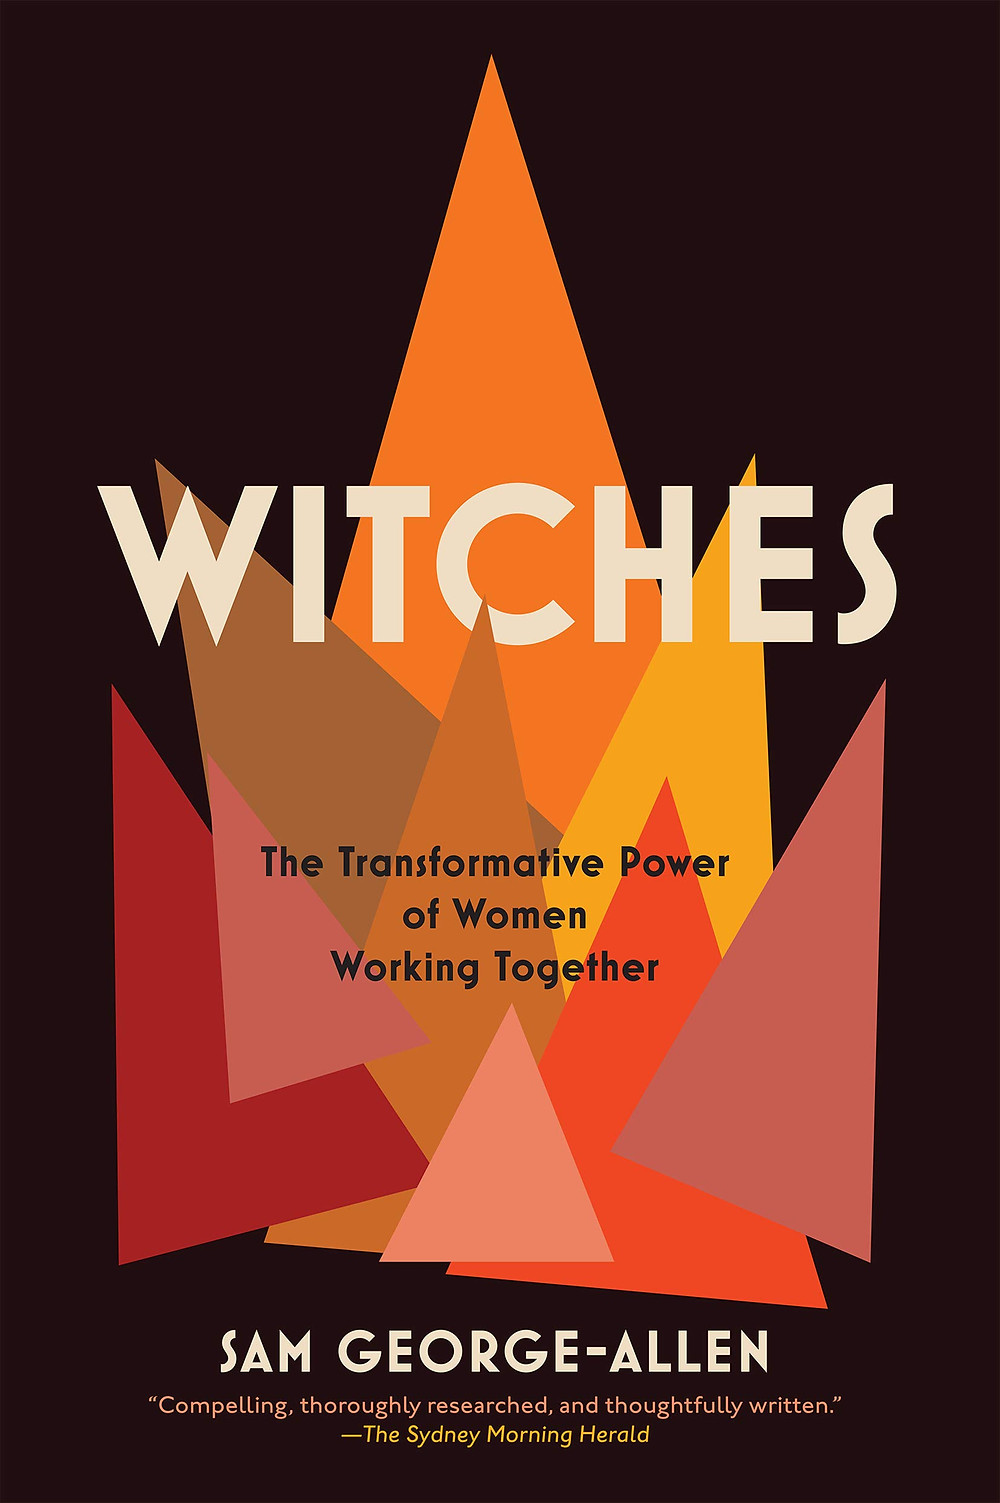 "Witches: The Transformative Power of Women Working Together by Sam George-Allen (Author). The Book Slut book reviews, Description: A celebration of the revolutionary potential of women working with other women, and a powerful statement about myths like the ""cool girl"" or the ""catty workplace"" Covens. Girl Bands. Ballet troupes. Convents. In all times and places, girls and women have come together in communities of vocation, of necessity, of support. In Witches, Sam George-Allen explores how wherever women gather, magic happens. Female farmers change the way we grow our food. Online beauty communities democratize skin-care rituals. And more than any other demographic, it's teen girls that shape our culture. Patriarchal societies have long been content to champion boys' clubs, while viewing groups that exclude men as sites of rivalry and suspicion. This deeply personal investigation takes us from our workplaces to our social circles, surveying our heroes, our outcasts, and ourselves, in order to dismantle the persistent and pernicious cultural myth of female isolation and competition . . . once and for all. Product Details Publisher Melville House Publishing Publish Date January 28, 2020 Pages 288 Dimensions 5.5 X 0.9 X 8.1 inches 